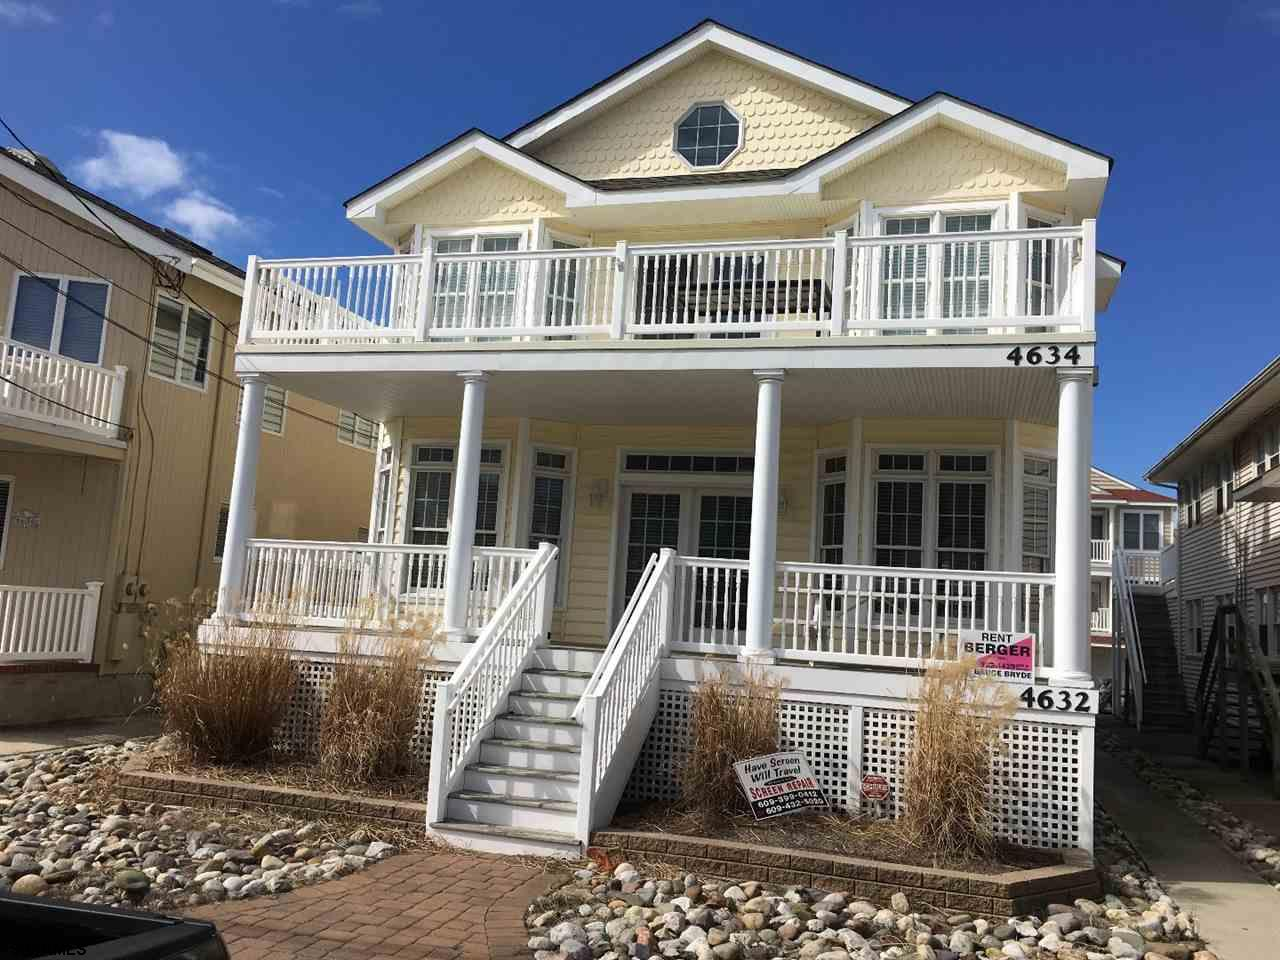 4632 Central Ave, Ocean City, NJ 08226